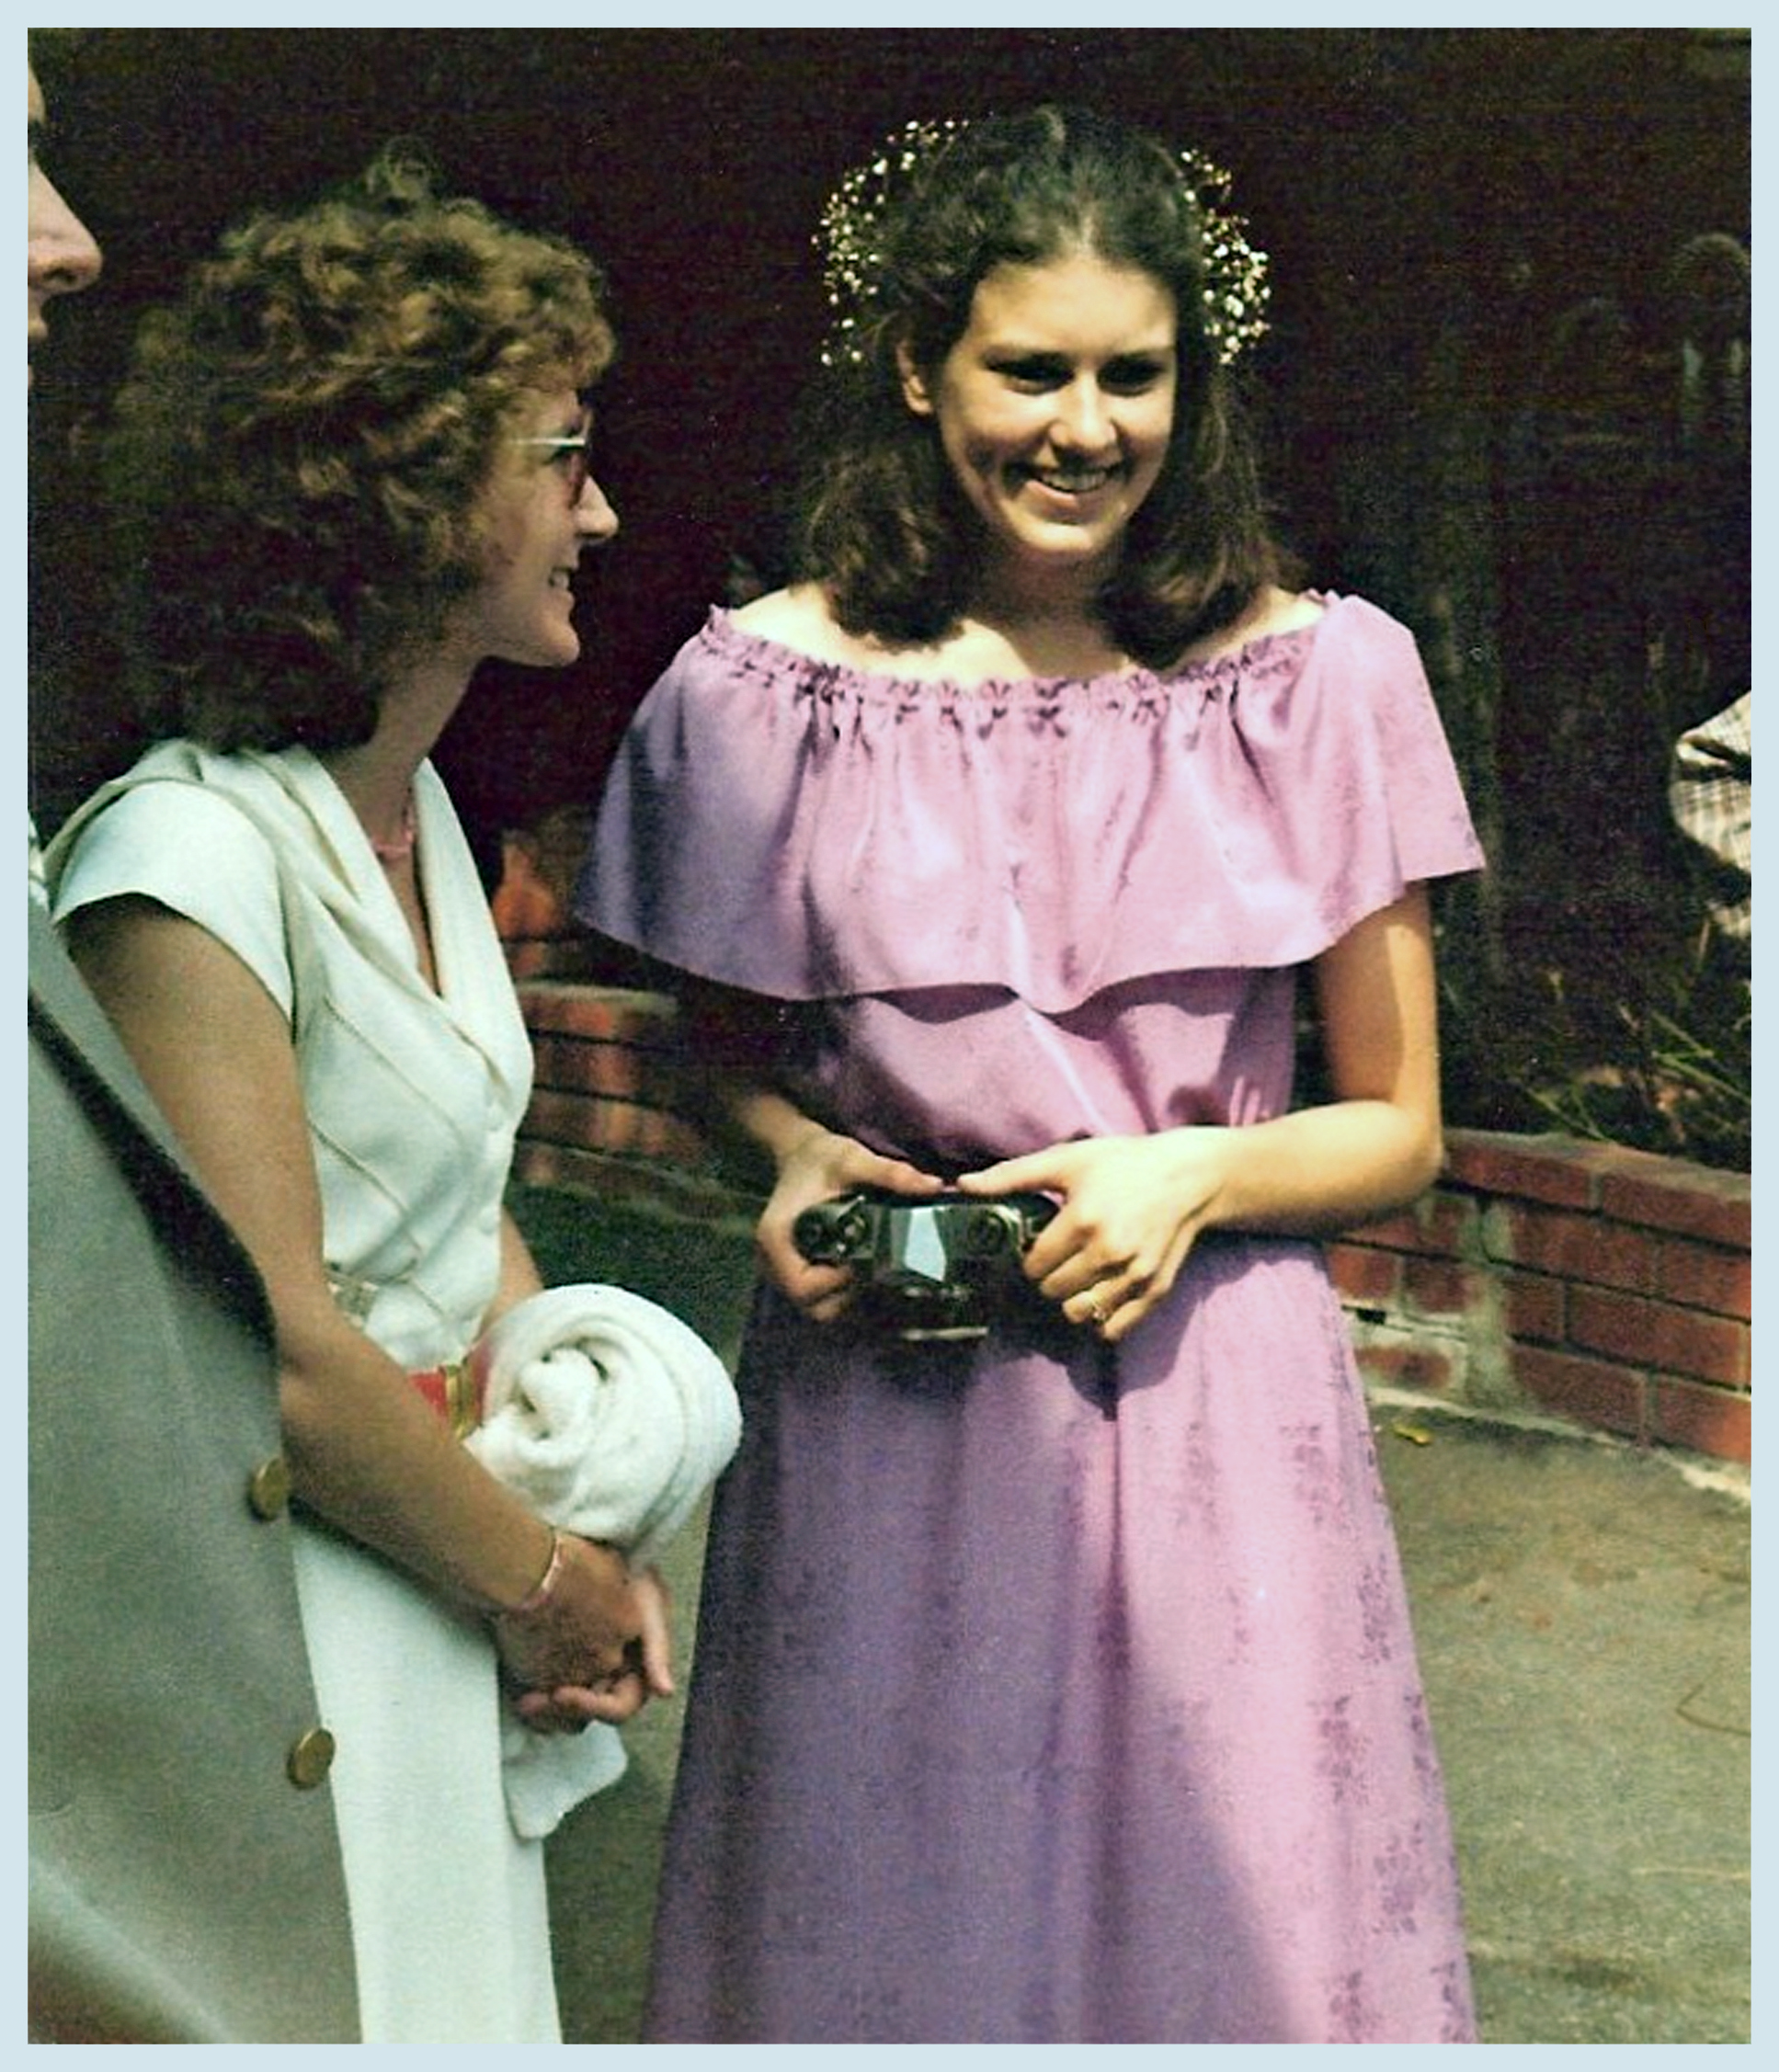 My sister Joyce put me in this dress for her 1980 wedding (with Denise Gail Williams)